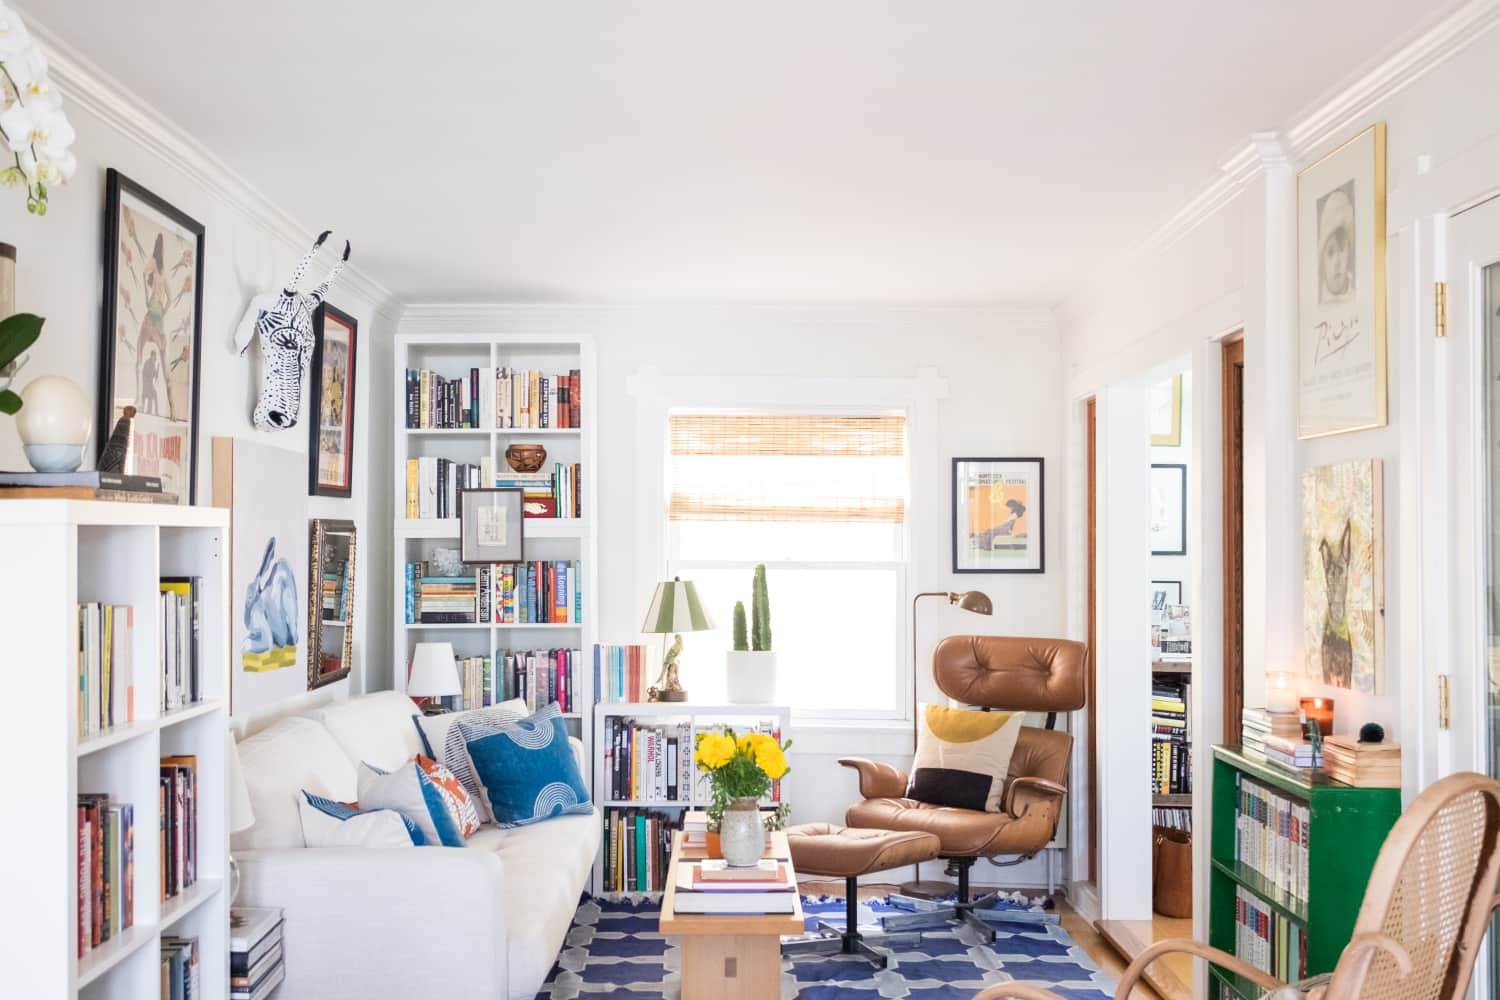 The 9 Go-To Stores Real Estate Agents Use for Inexpensive Staging Decor